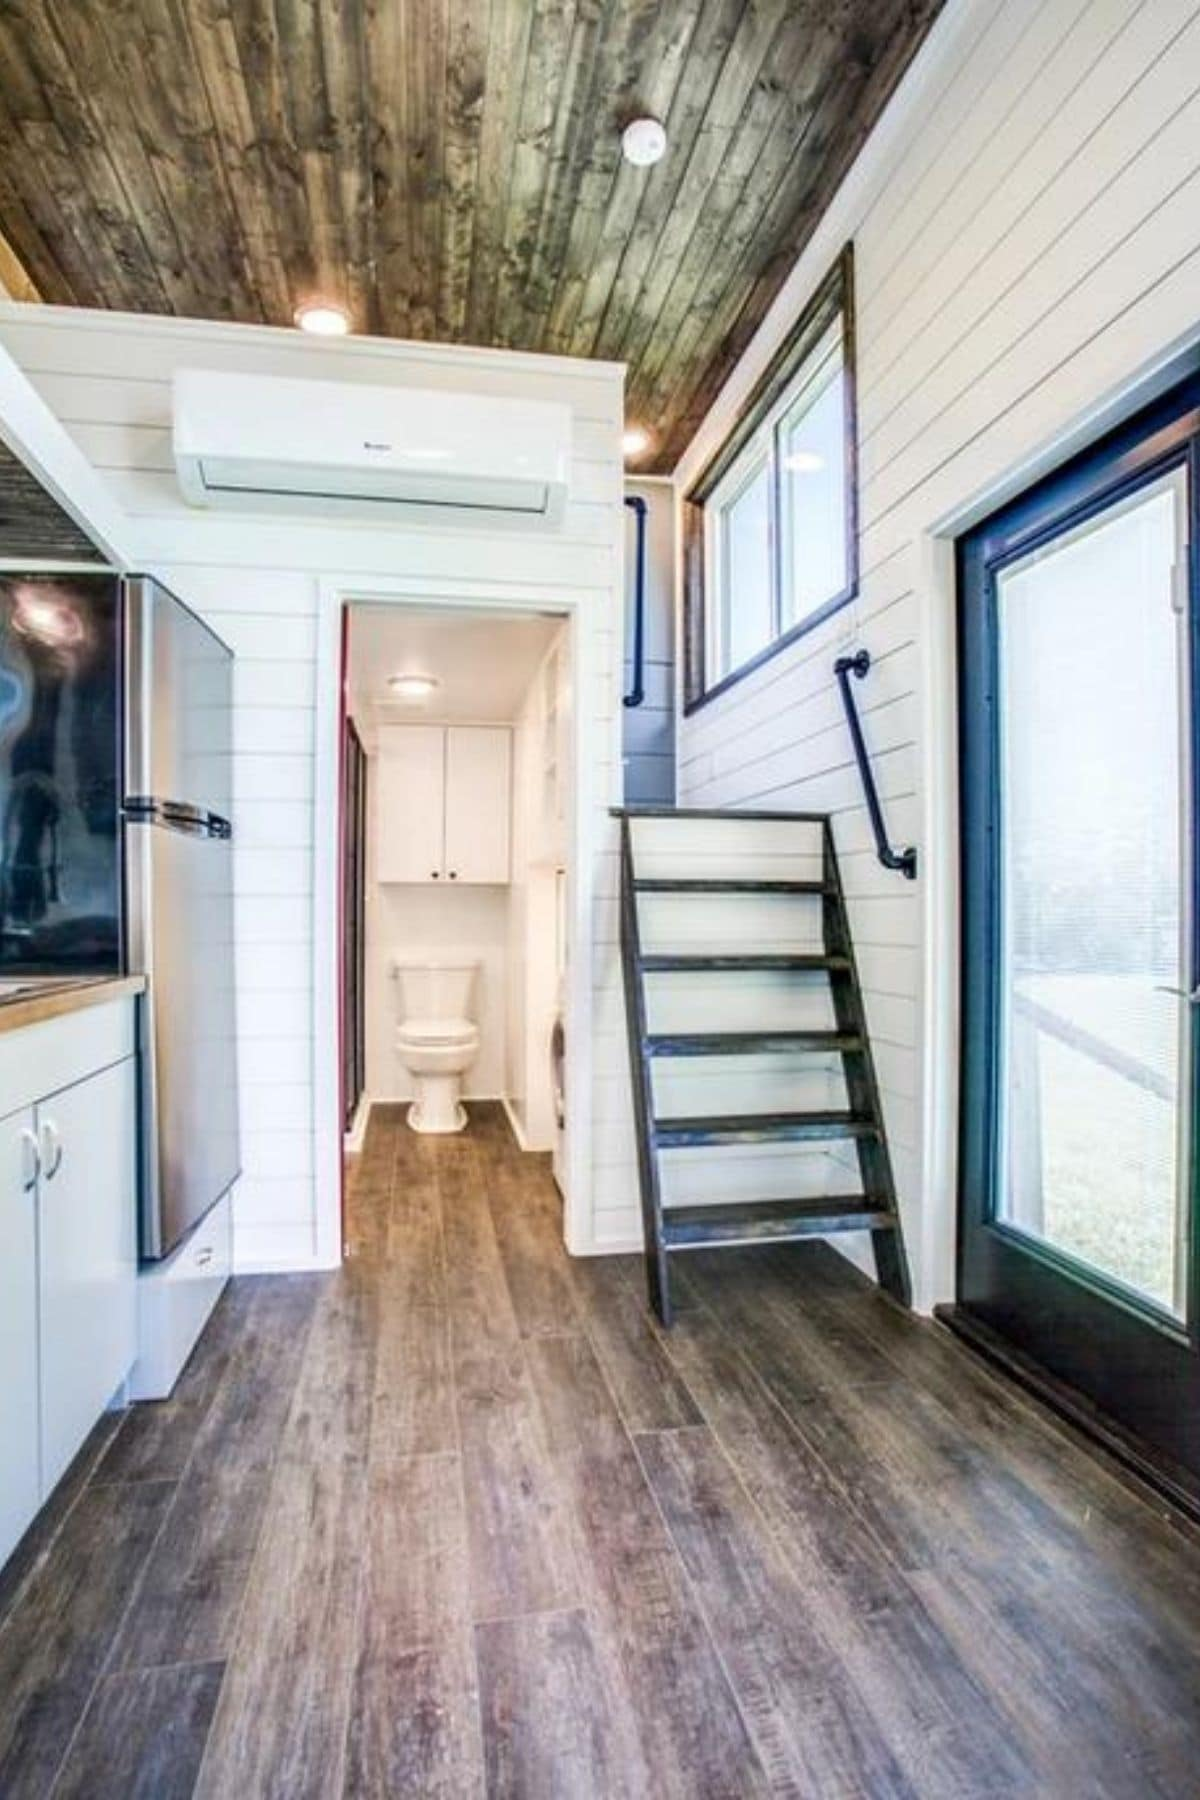 Open door to bathroom with ladder to the right